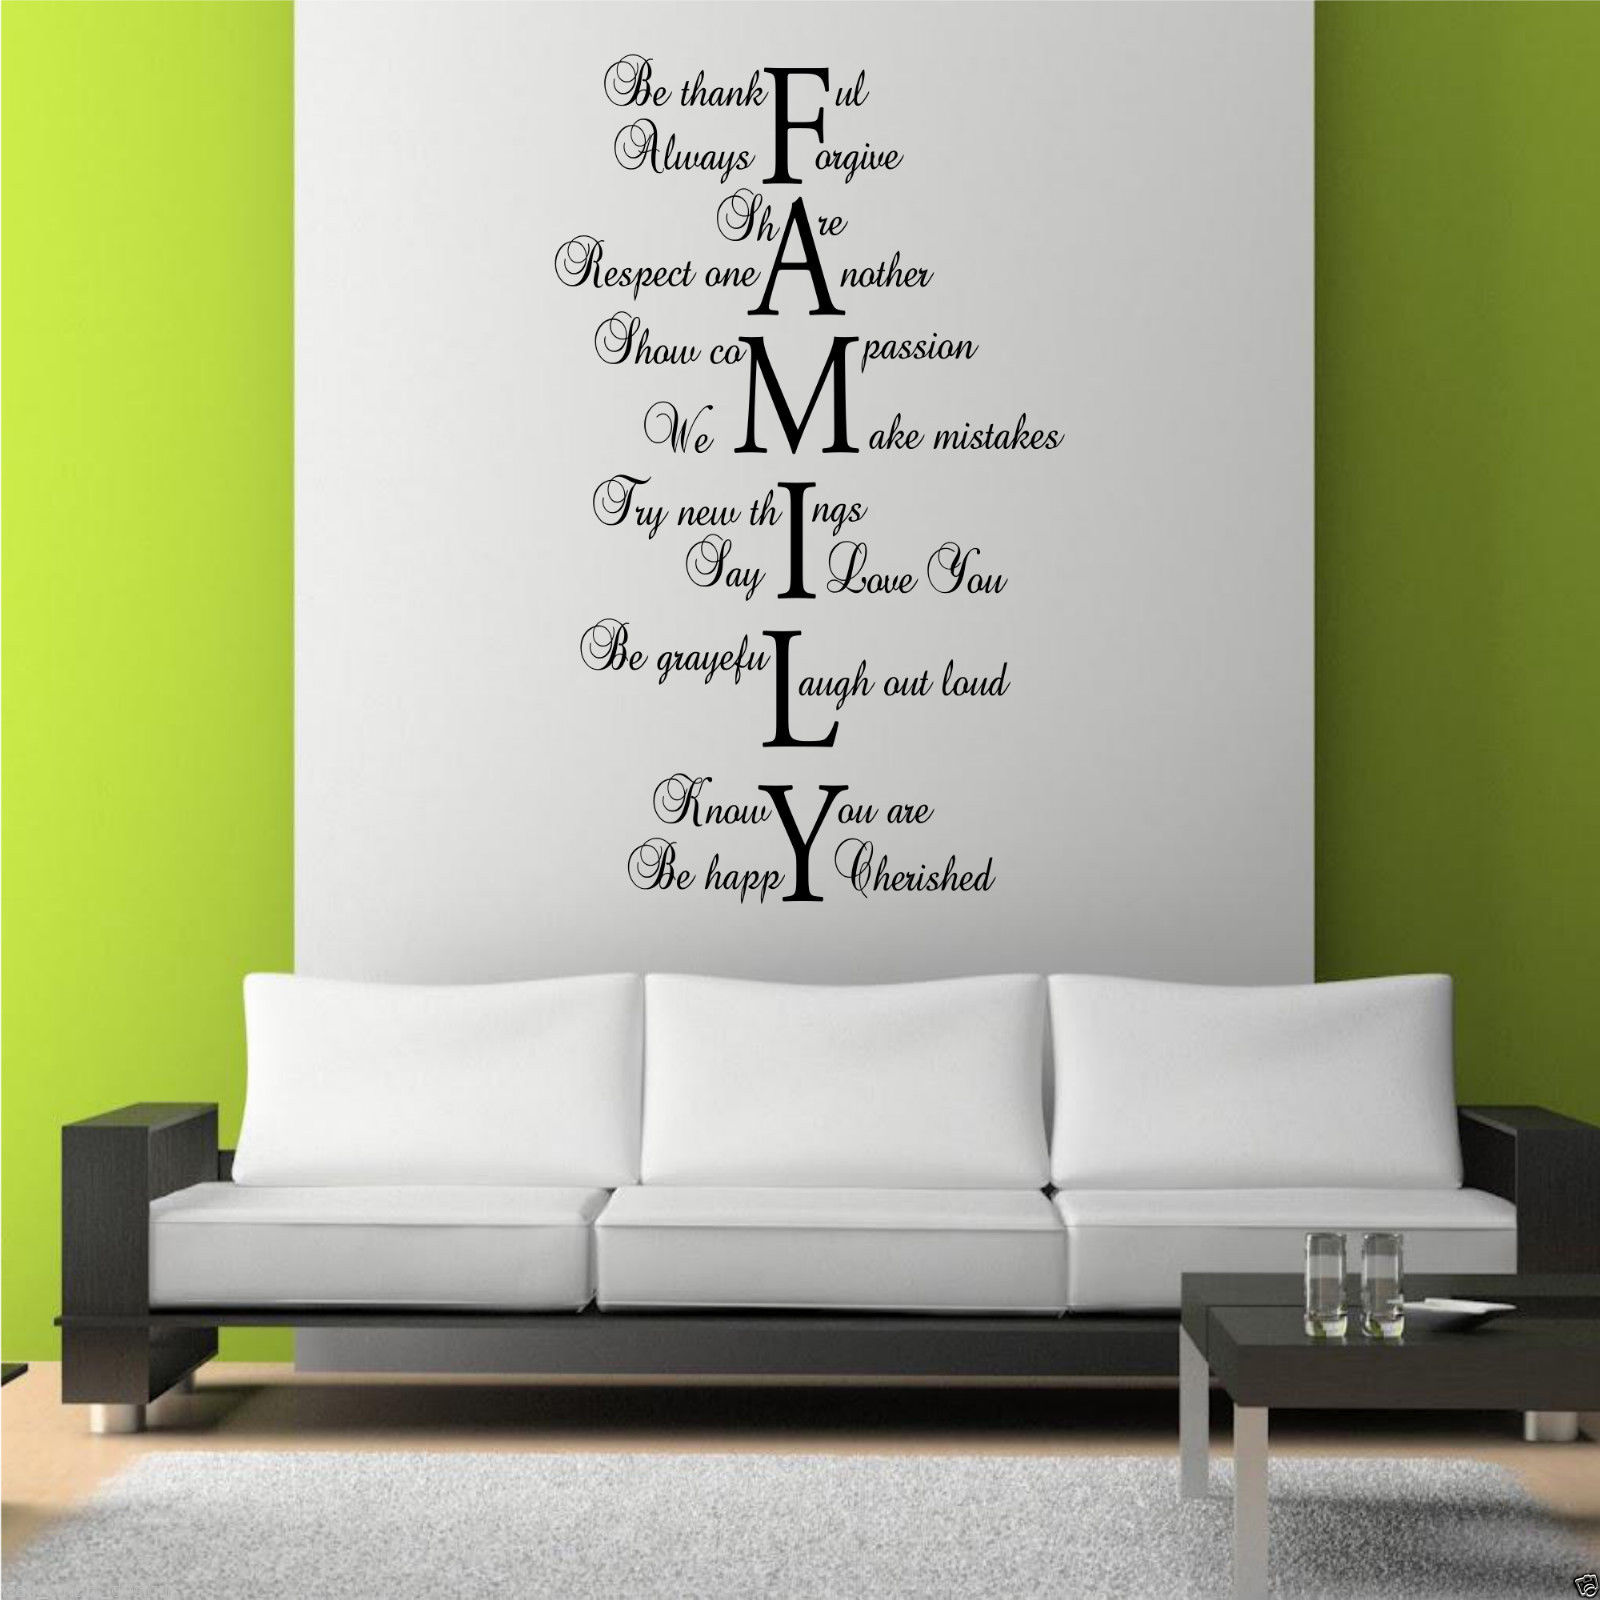 Family love life wall art sticker quote room decal mural for Decor mural wall art